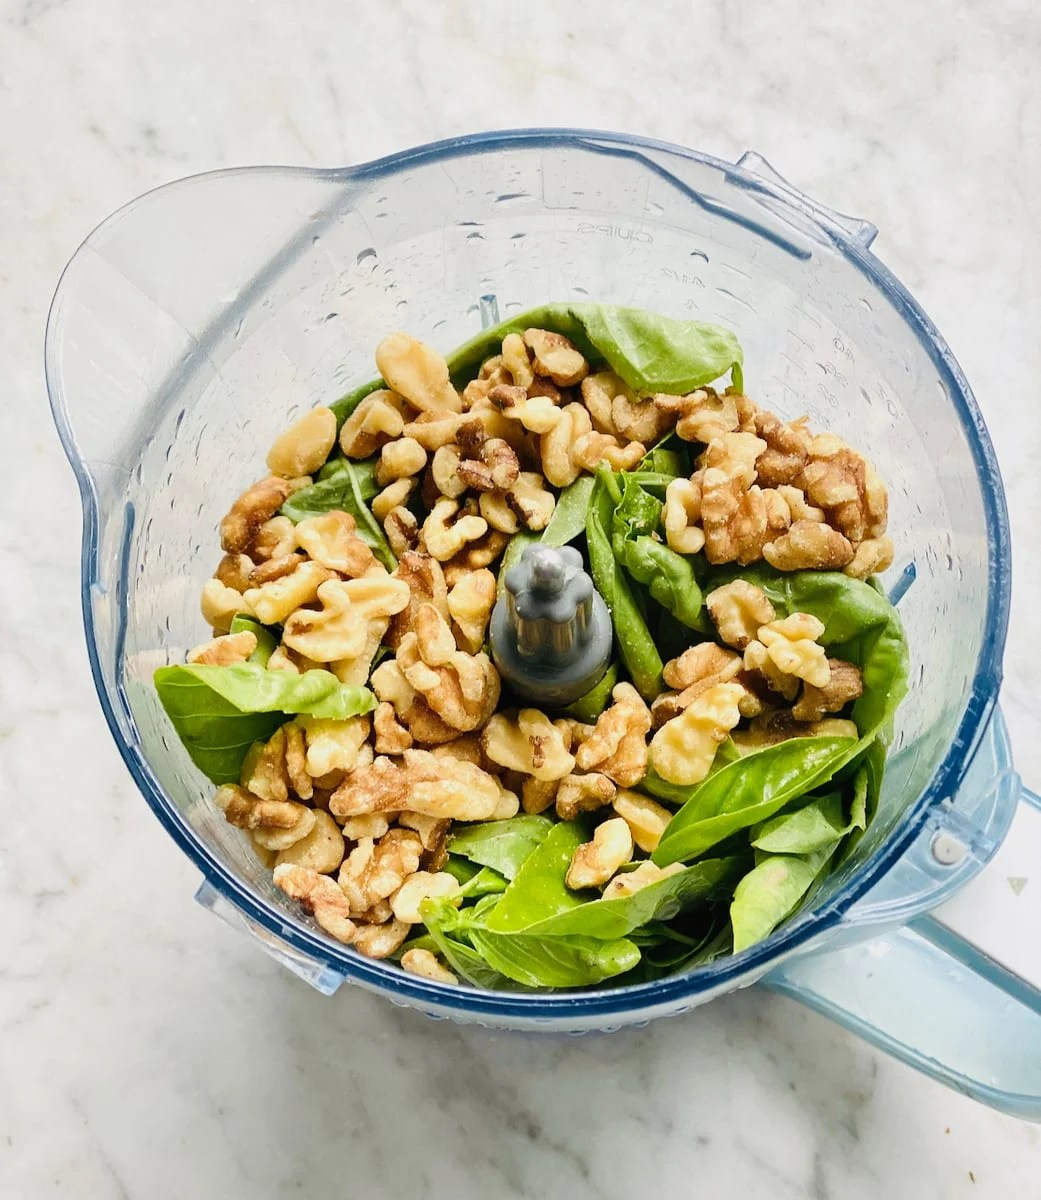 fresh basil and walnuts in a blender before processing